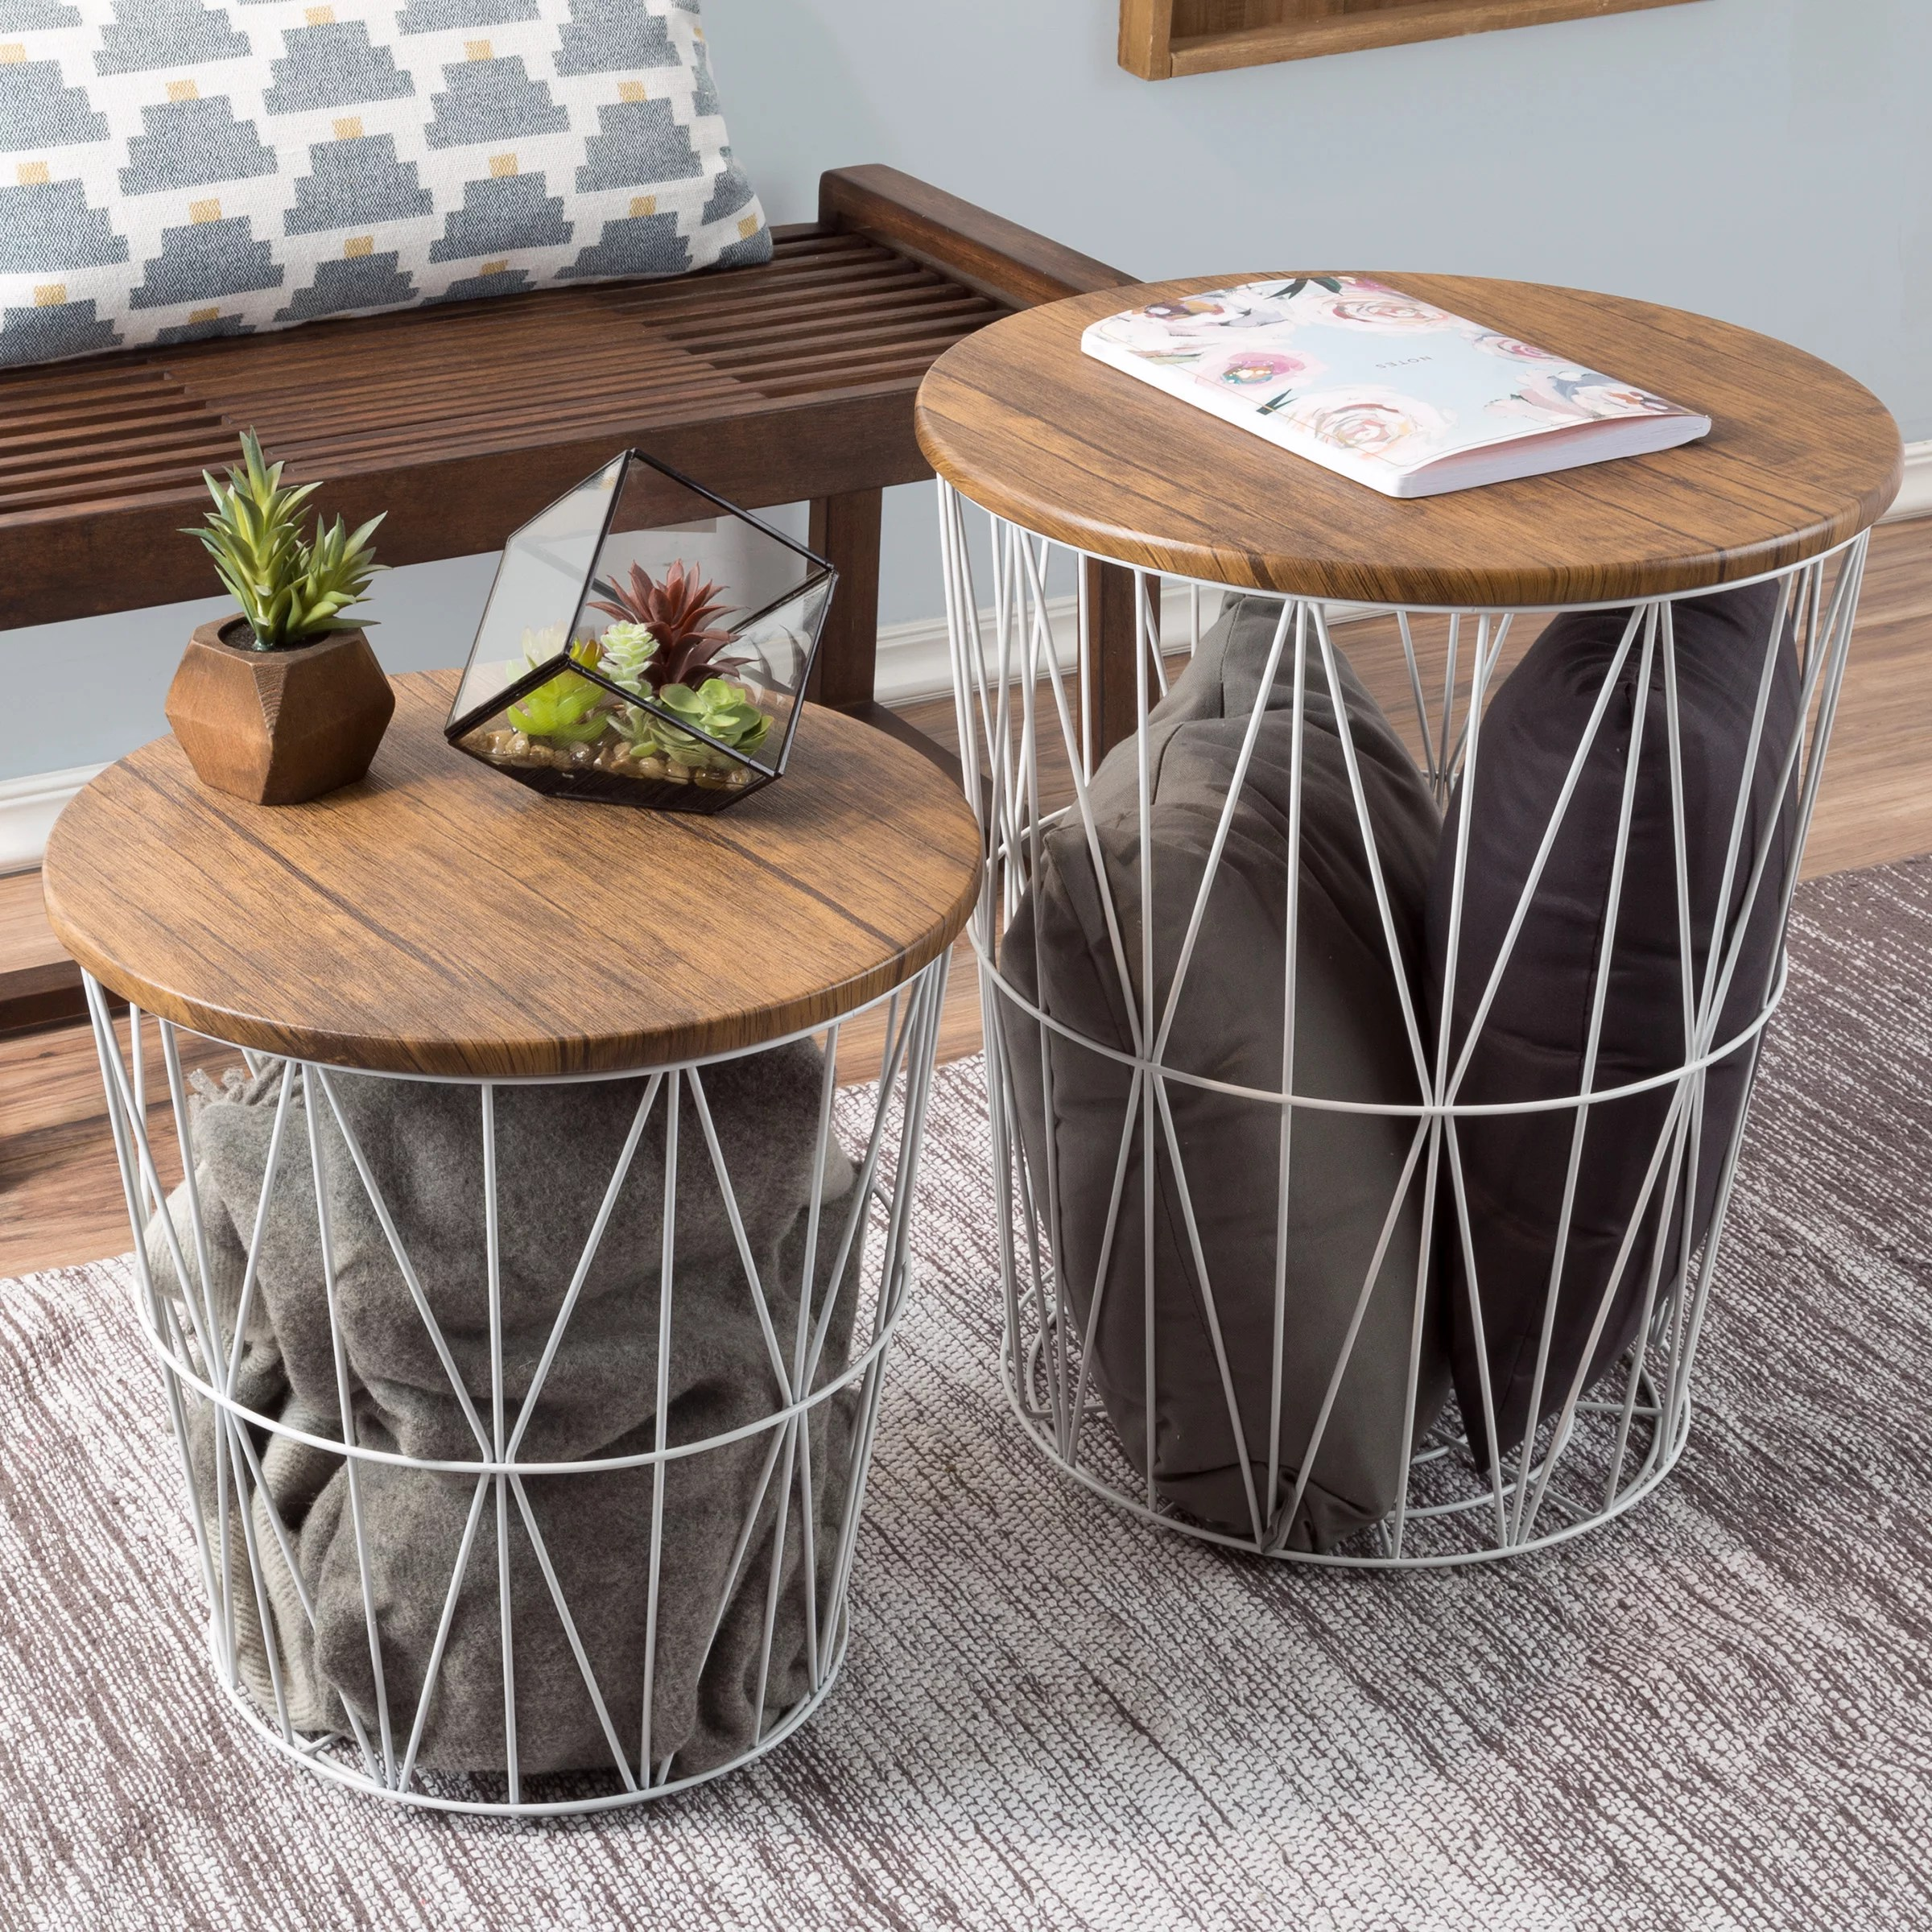 nesting end tables with storage set of 2 convertible round metal basket veneer wood top accent side tables for home and office by lavish home white